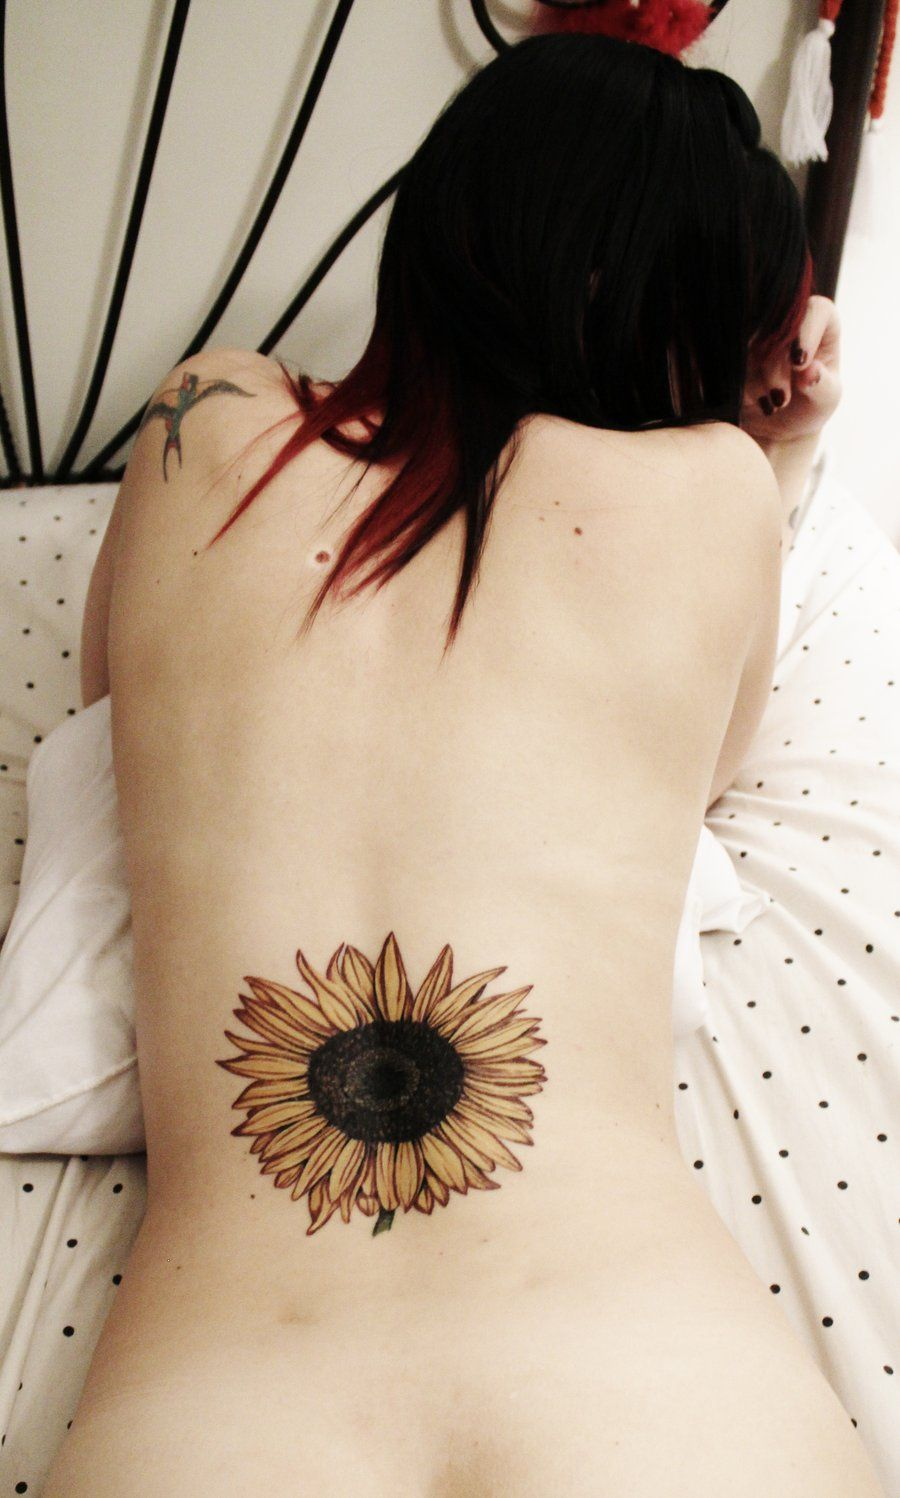 Love this sunflower tattoo obviously not the placementi want